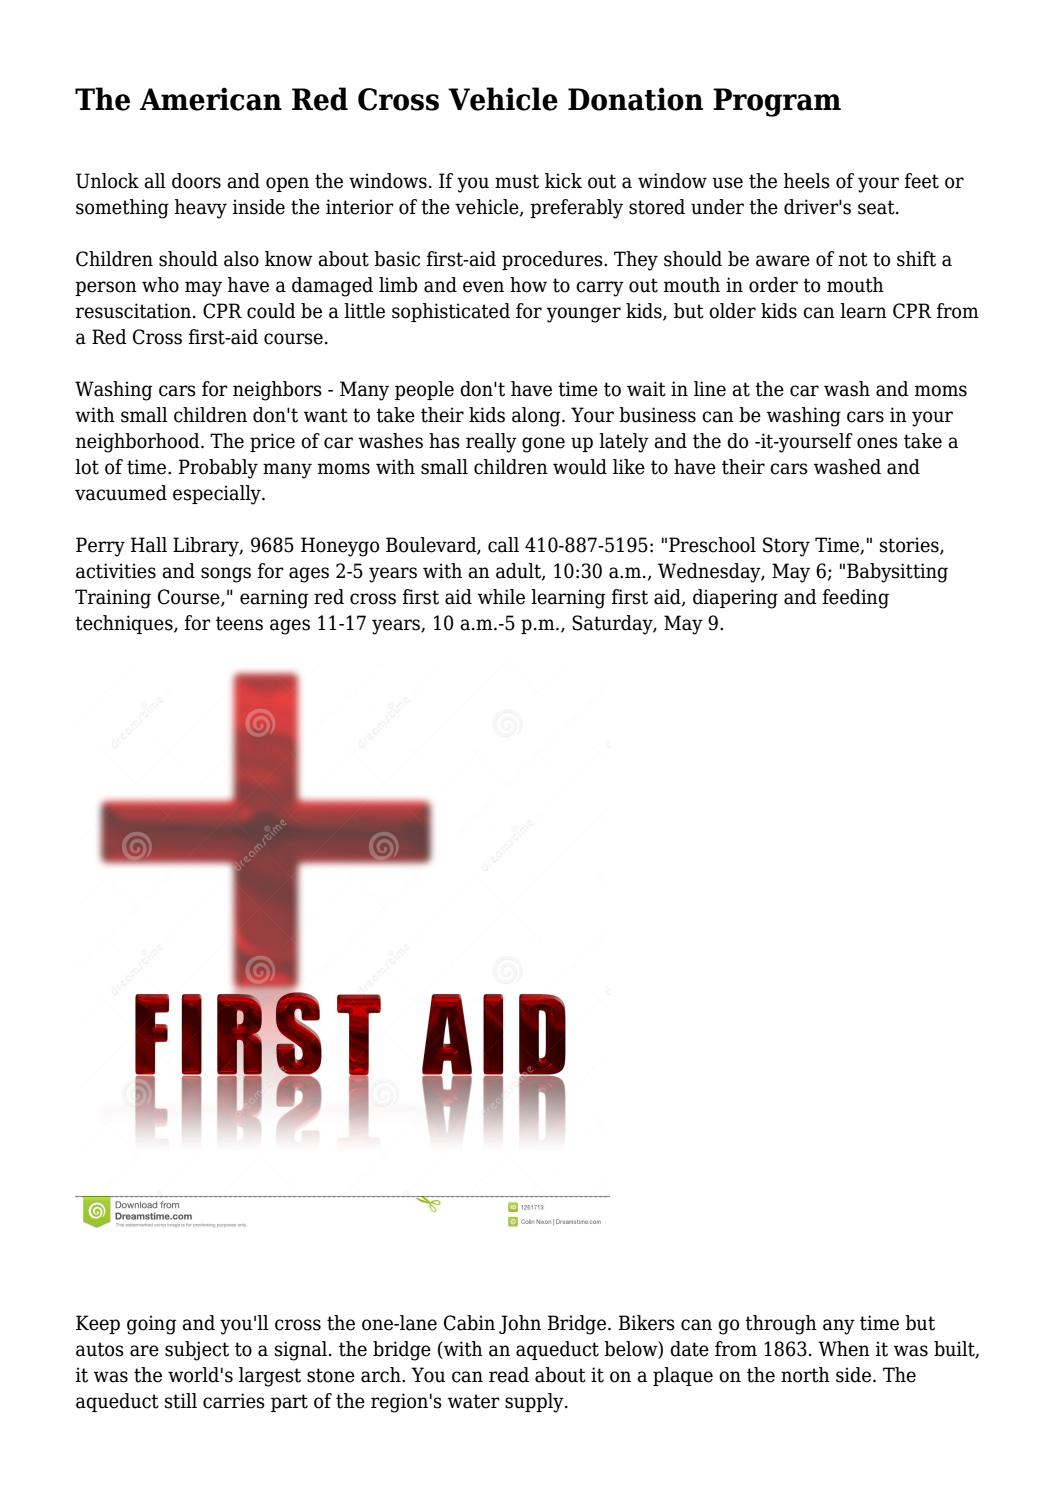 The American Red Cross Vehicle Donation Program By